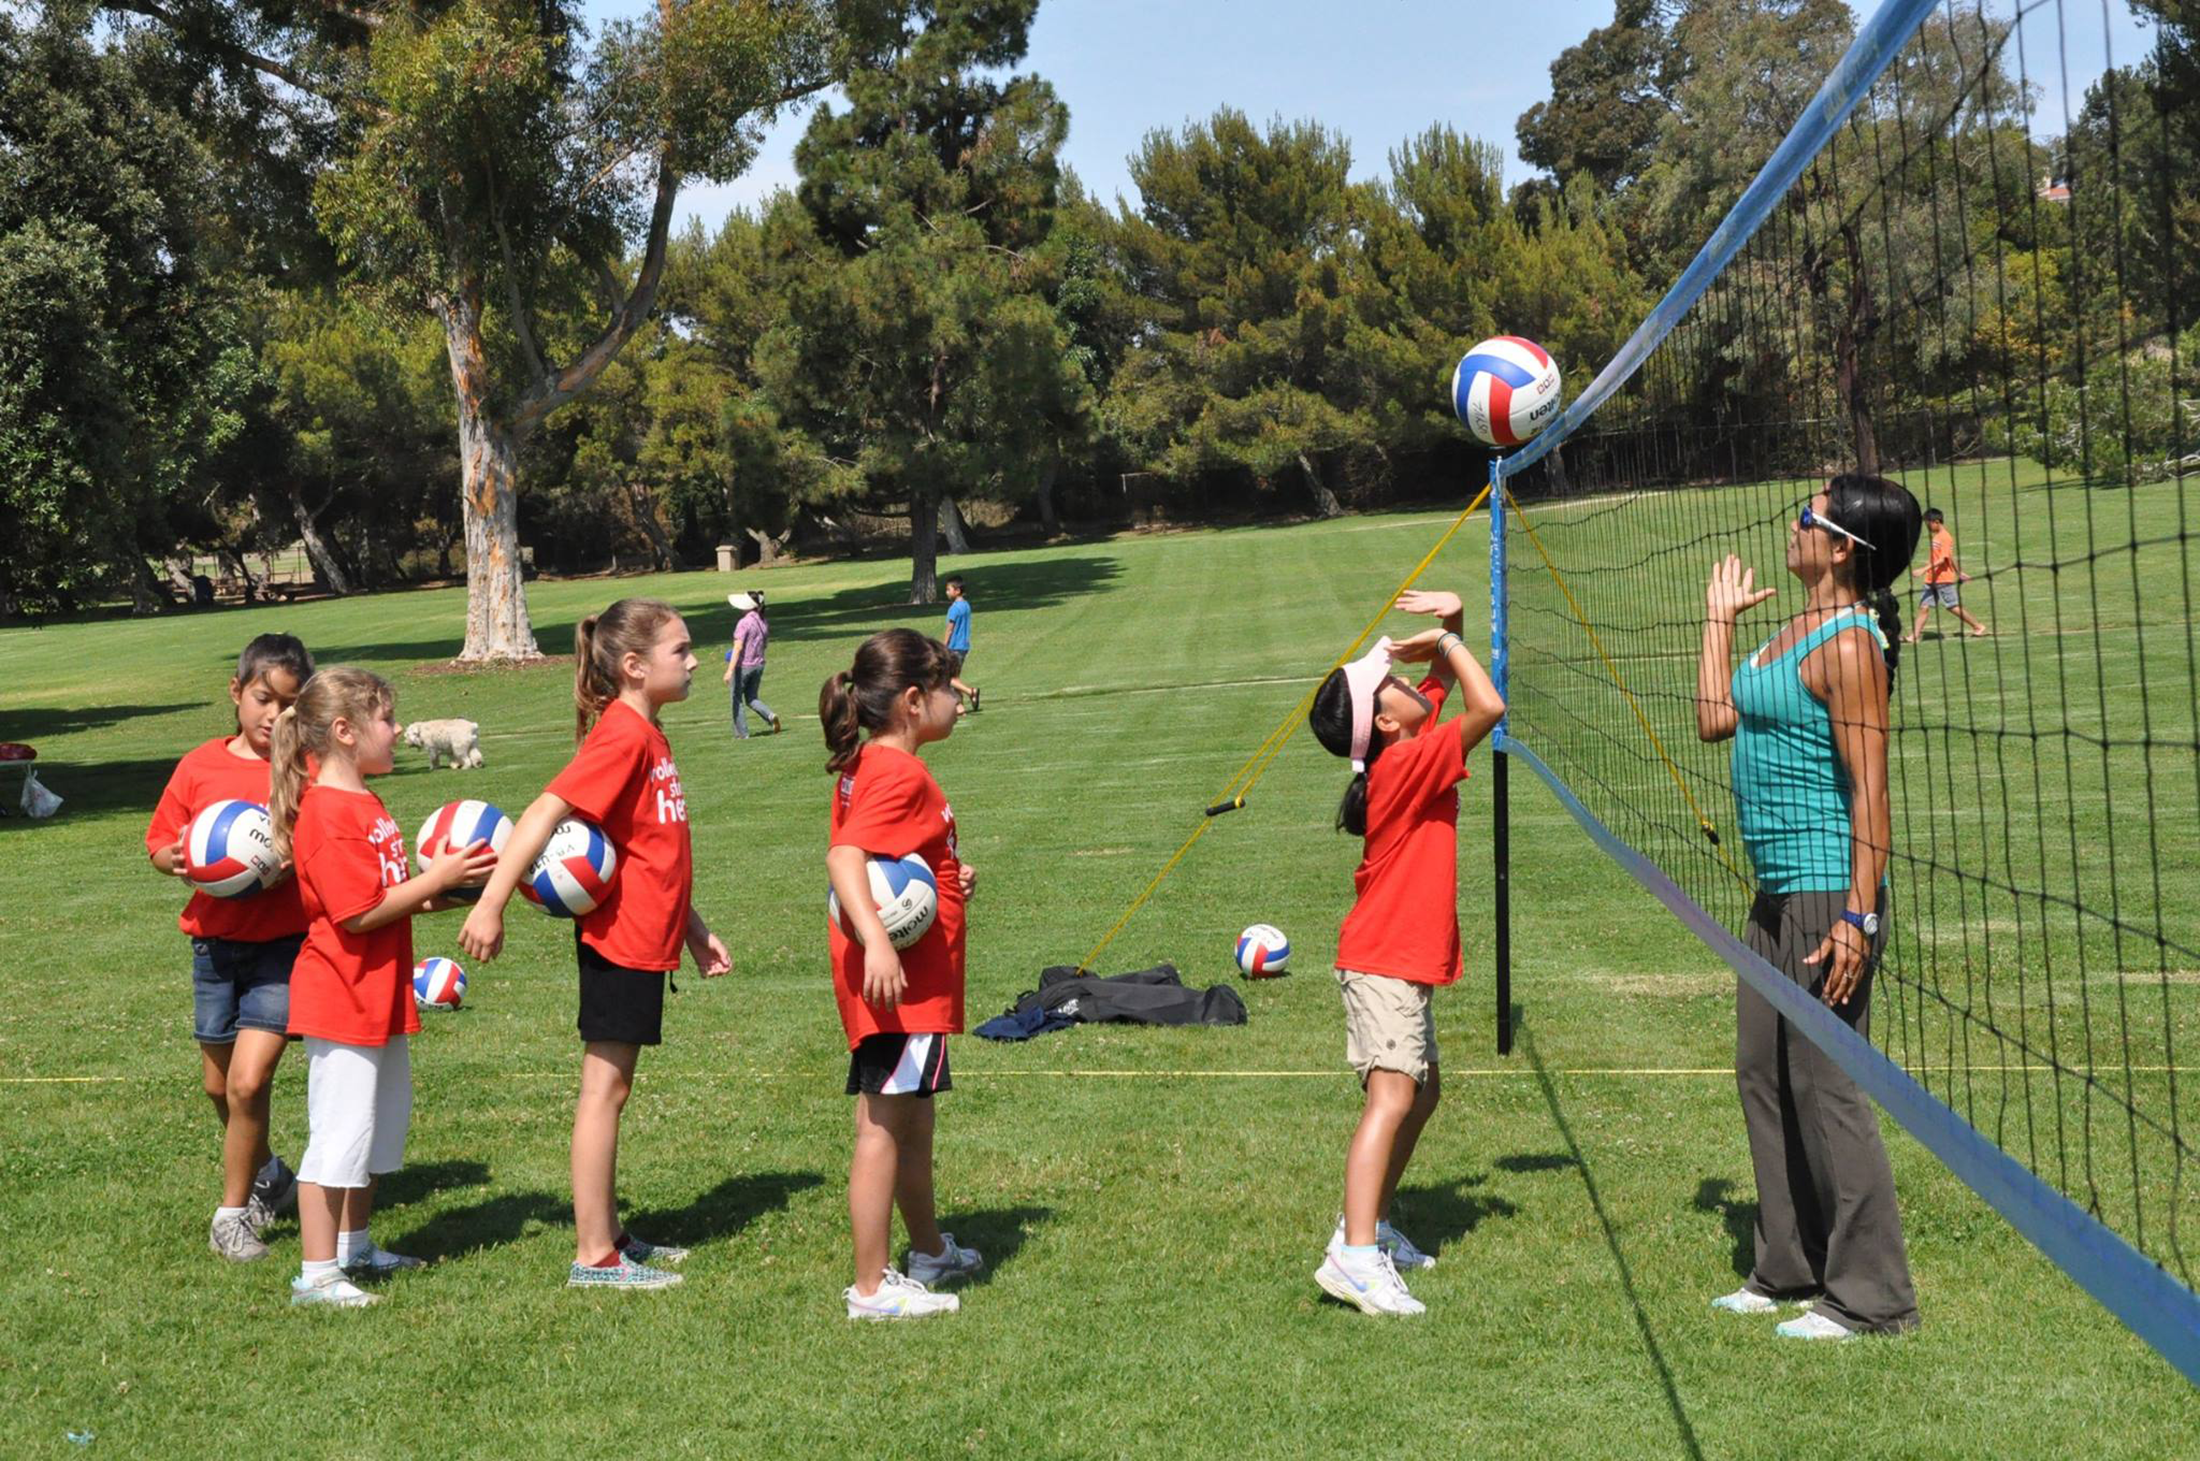 Ps Usyvl Portable Usyvl Youth Volleyball Grass Net